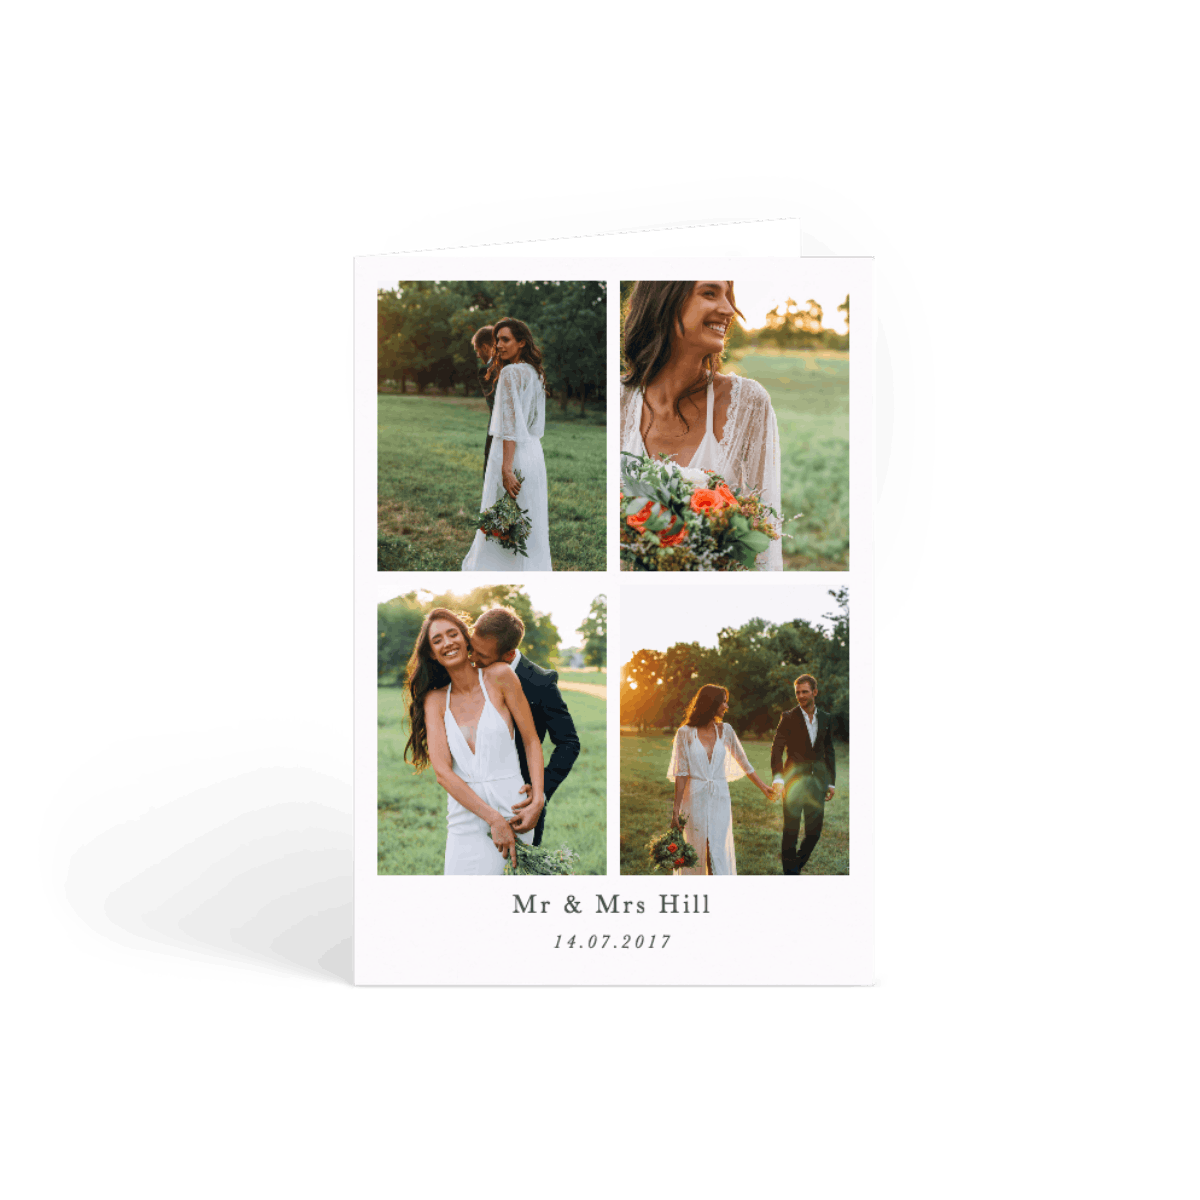 Https%3a%2f%2fwww.papier.com%2fproduct image%2f25420%2f2%2fportrait wedding grid 6343 front 1499764680.png?ixlib=rb 1.1